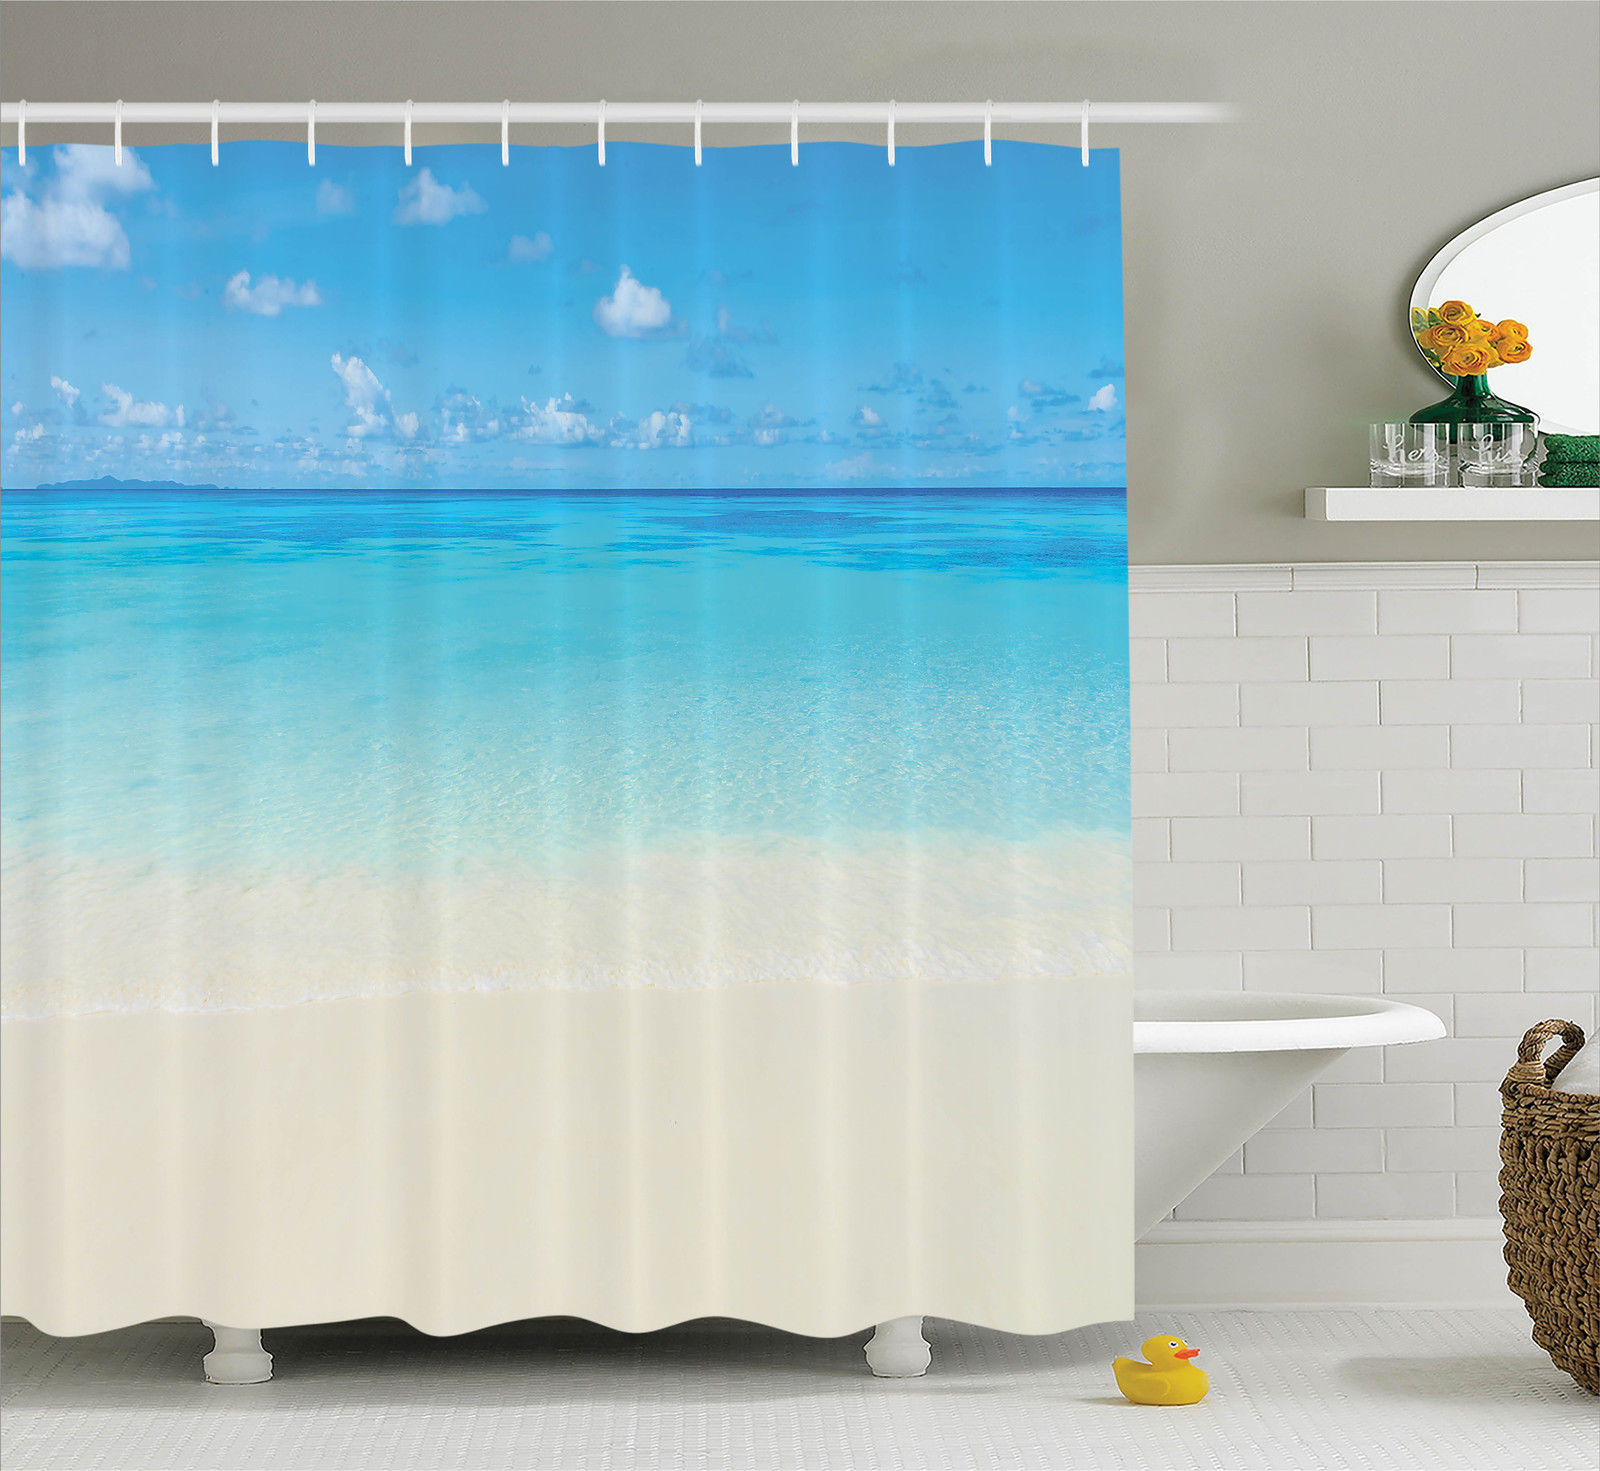 Ocean Decor Shower Curtain Set, Paradise Beach In Tropical Caribbean Sea With Fantastic Sky View Calm Beach House Theme, Bathroom Accessories, 69W X 70L Inches, By Ambesonne